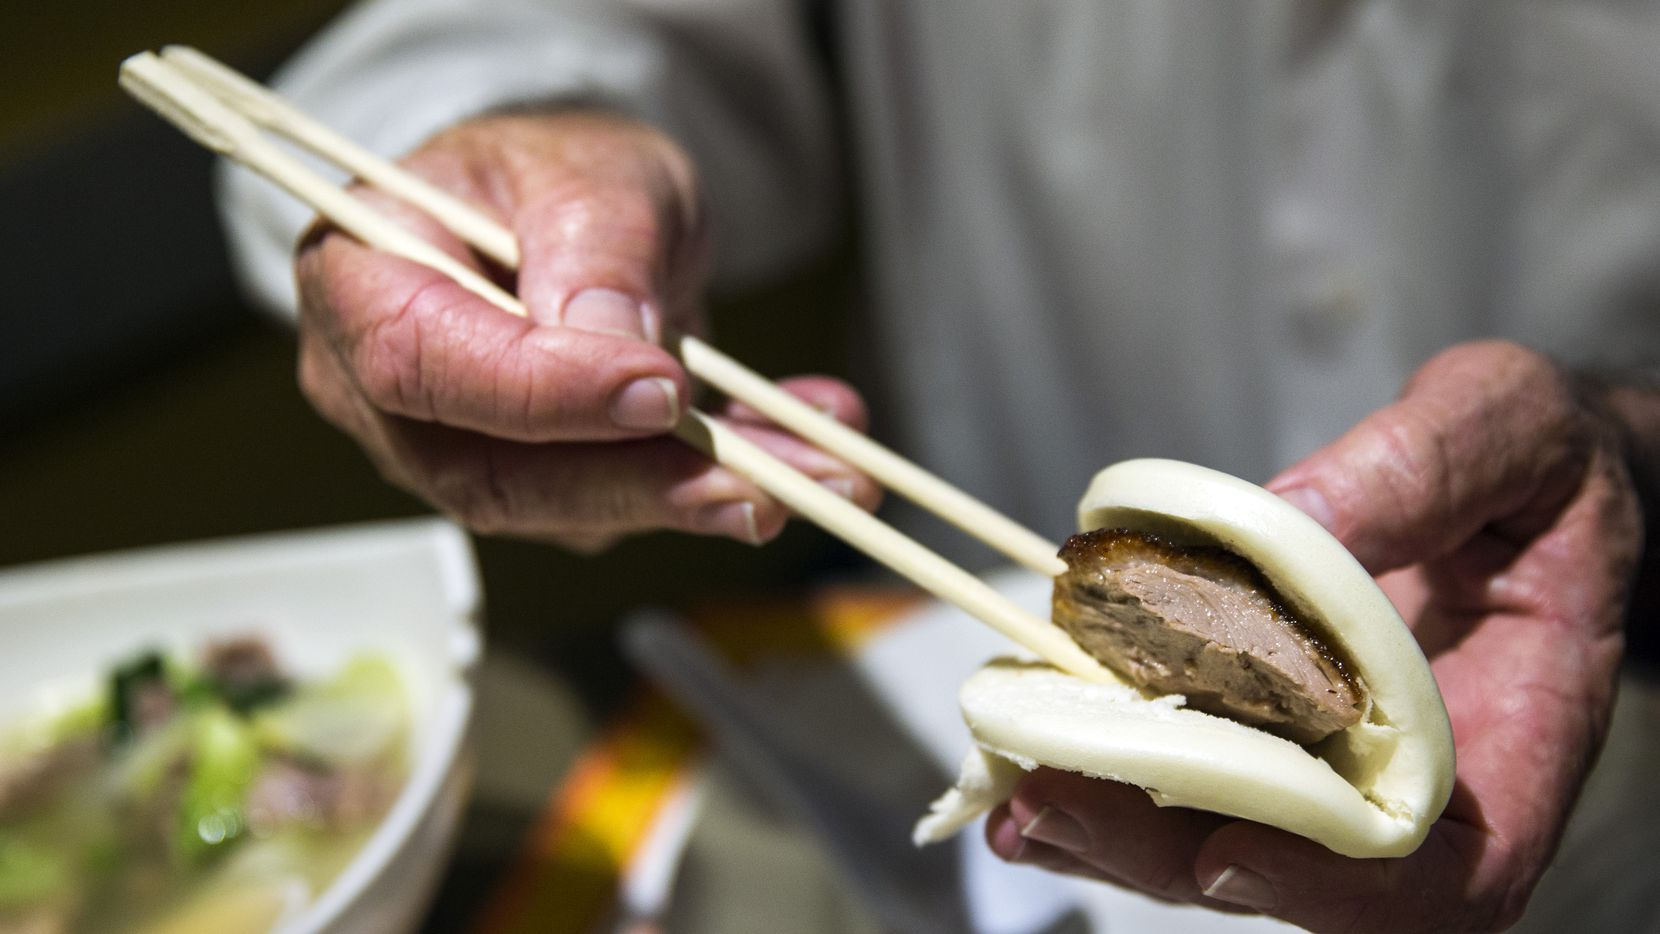 Peking duck is placed in a roll at First Chinese BBQ in Richardson. The Dallas suburb was lauded as one of the best foodie cities in the country.